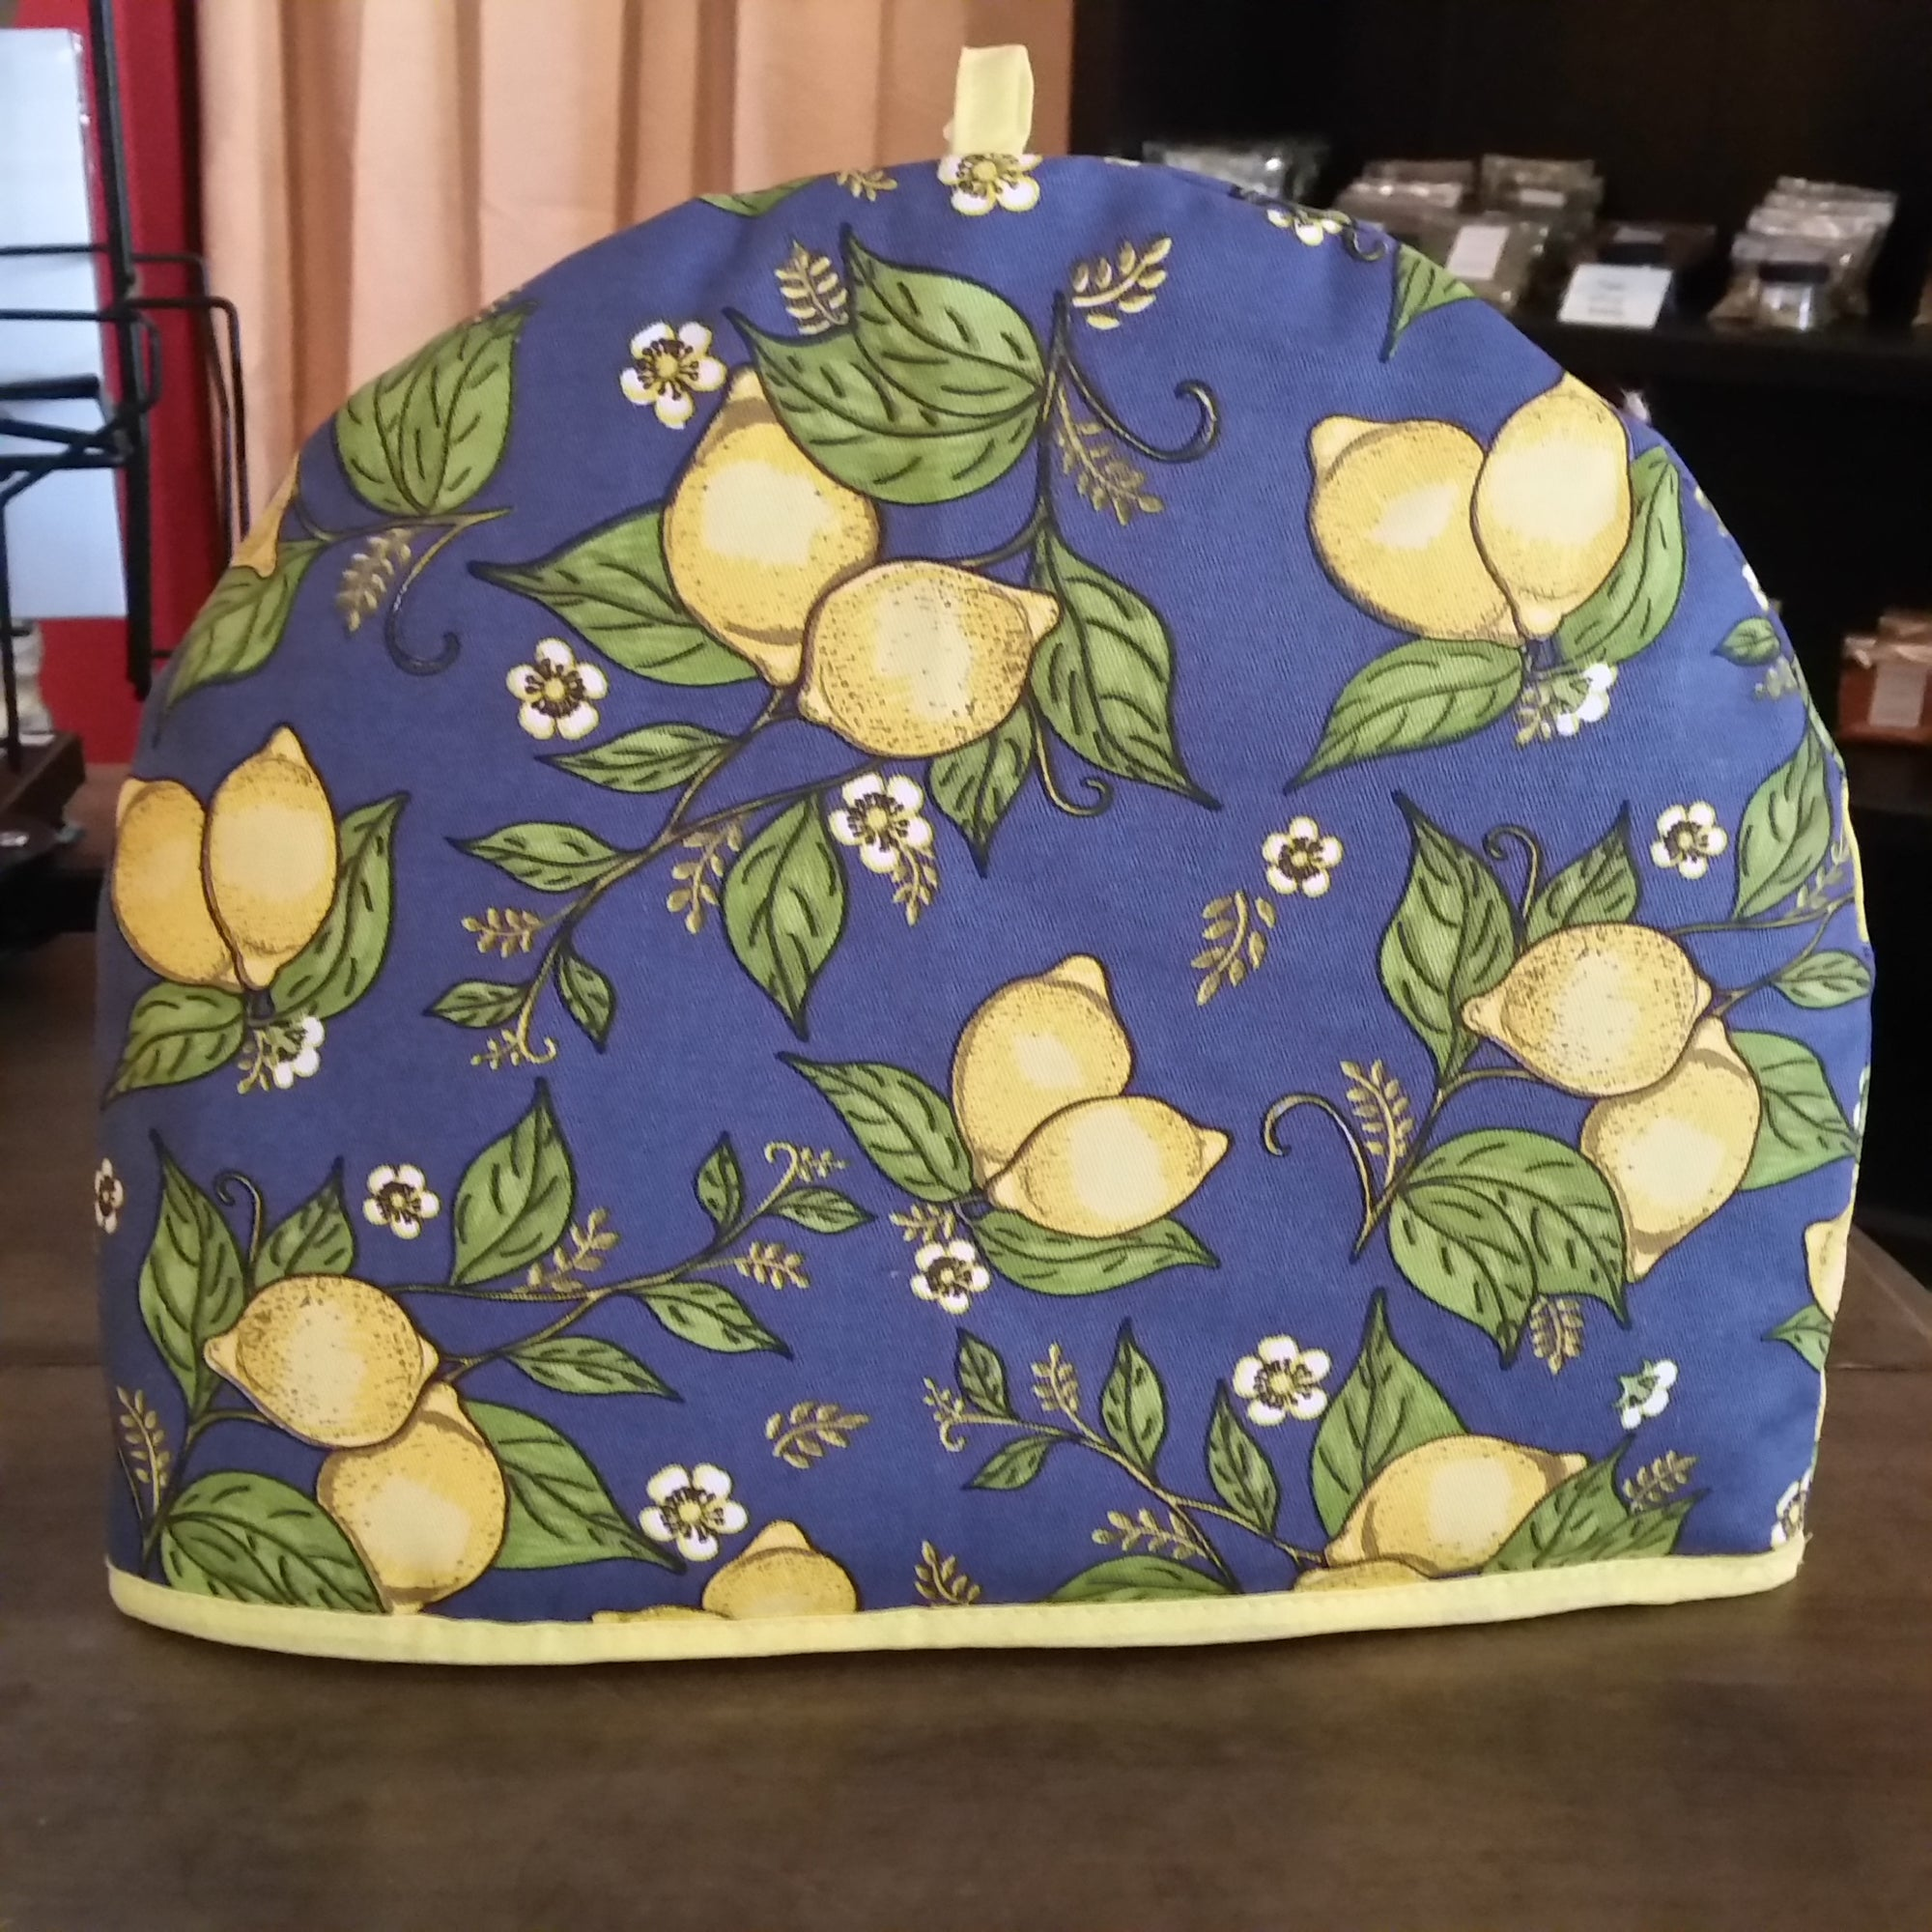 Tea Cozy Provencal Lemons 4-8 Cups